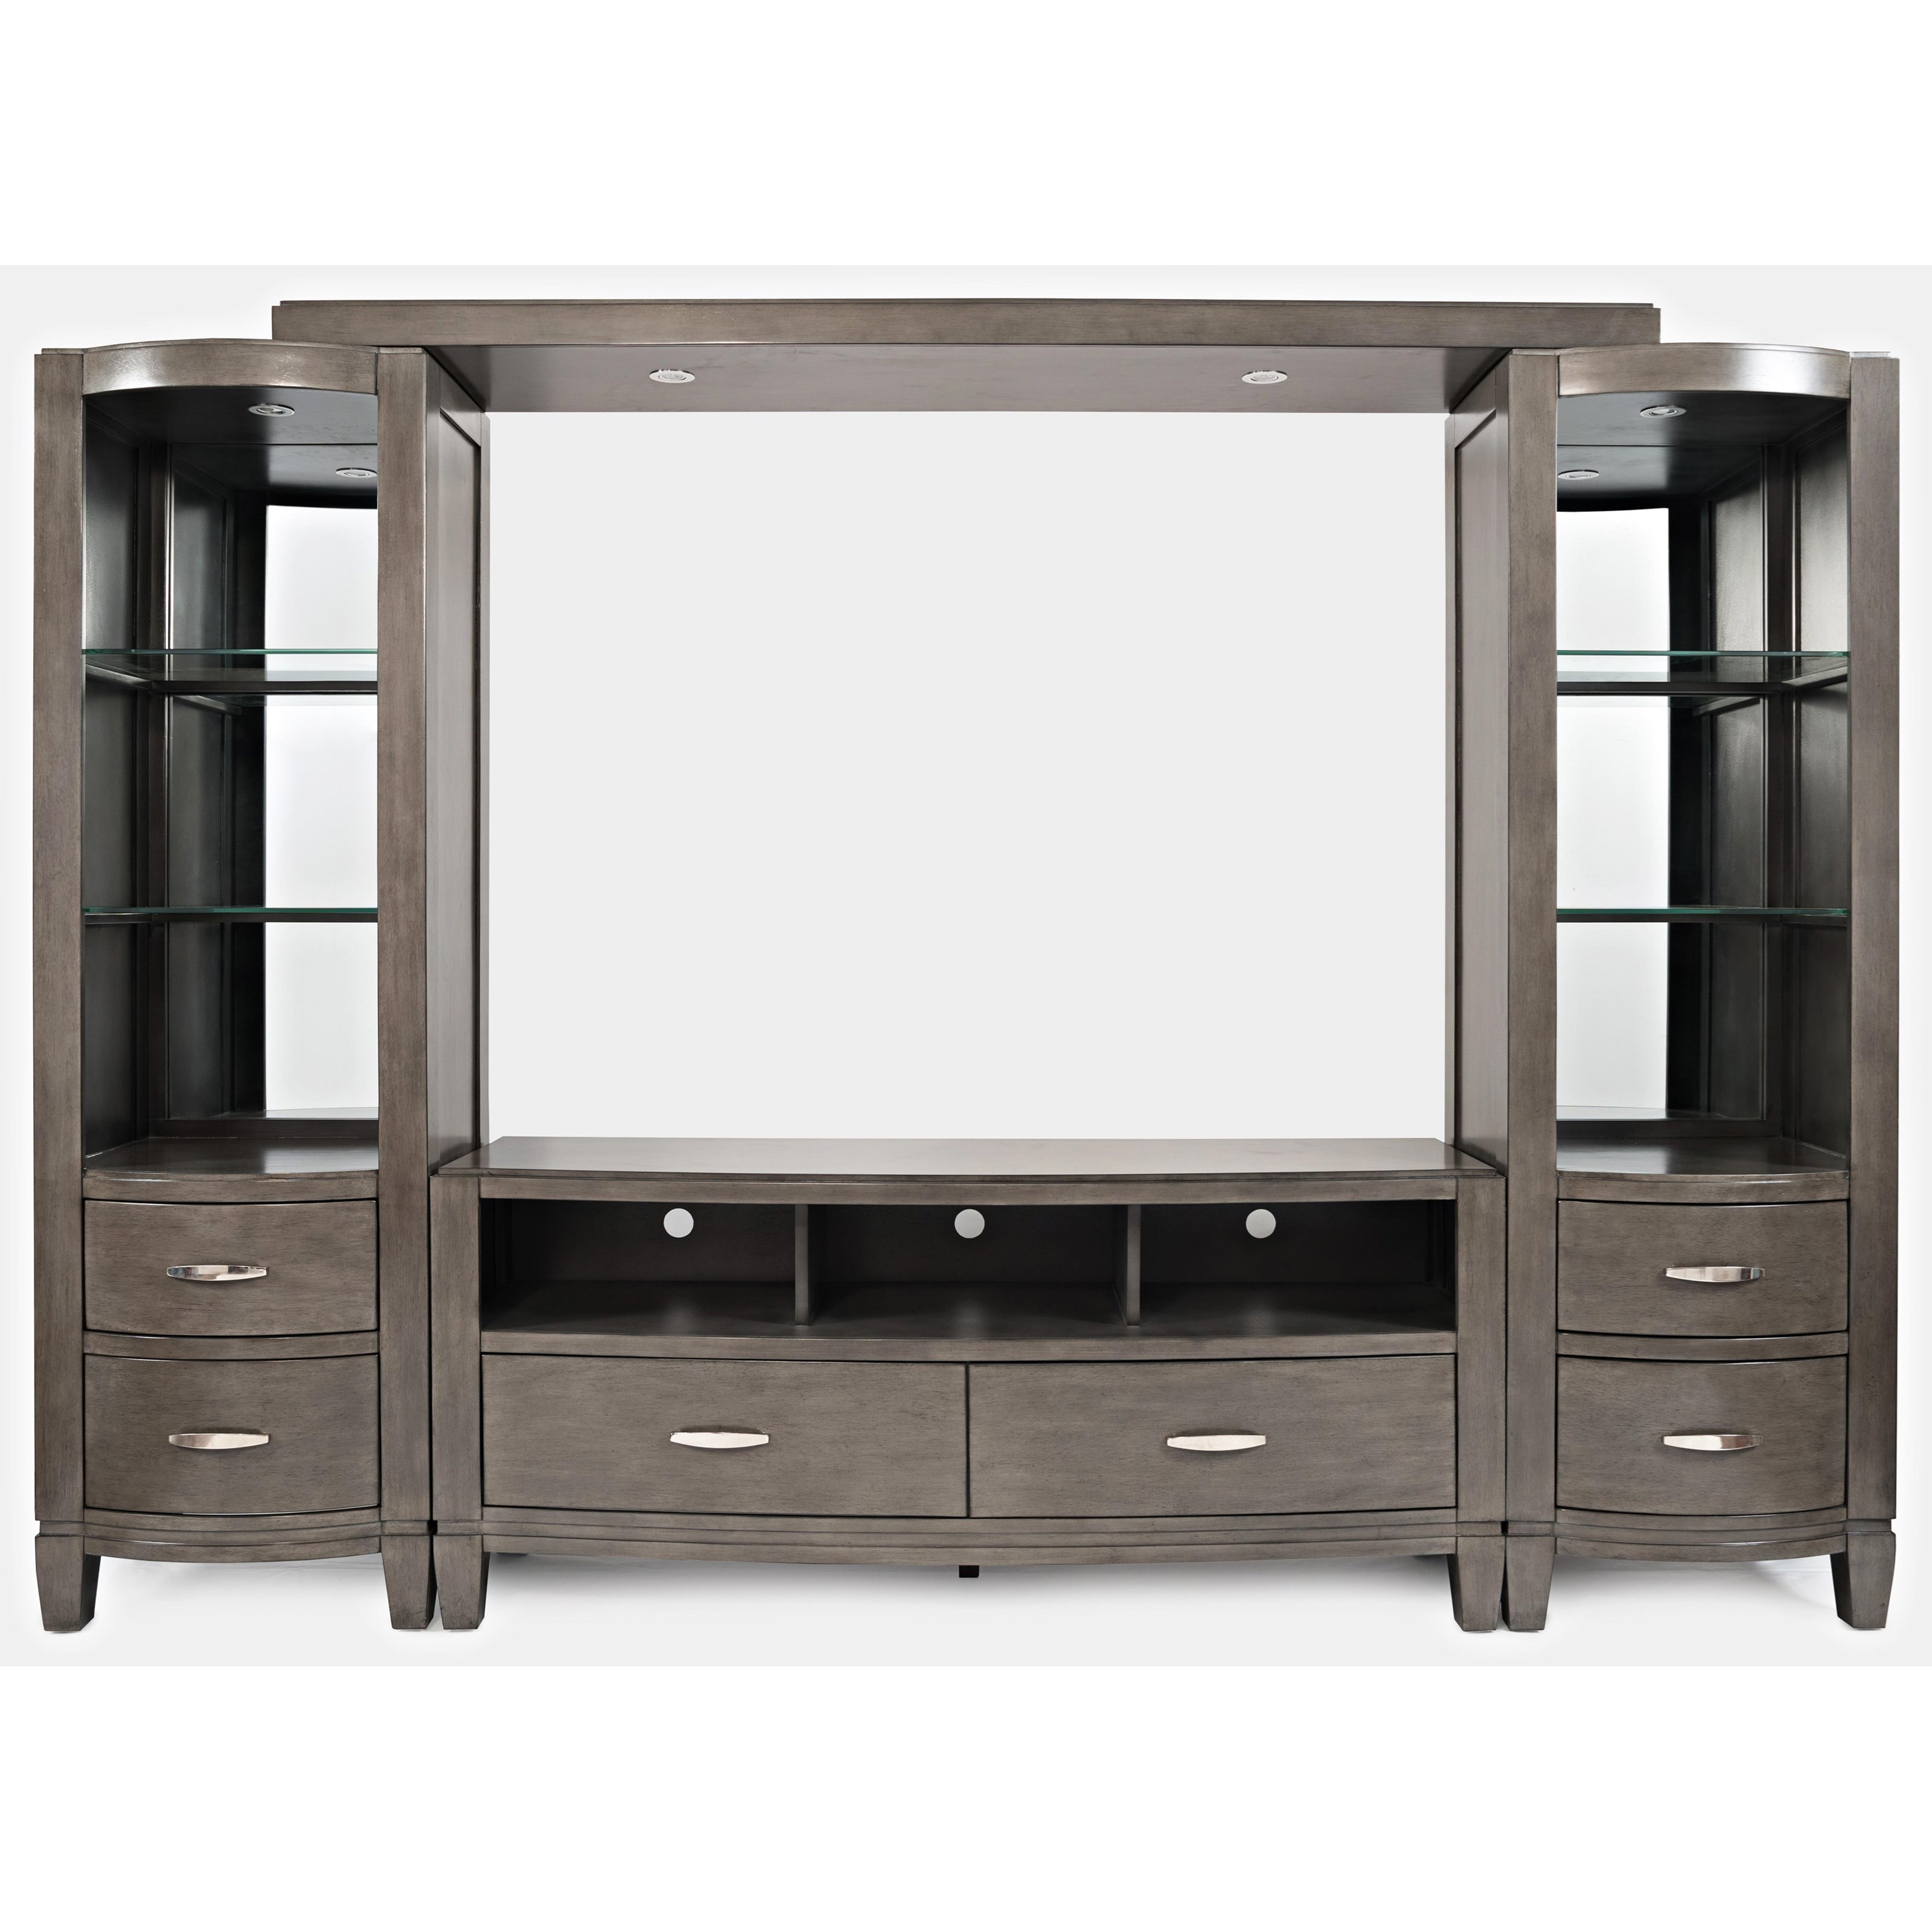 Scarsdale Entertainment Wall by Jofran at Jofran